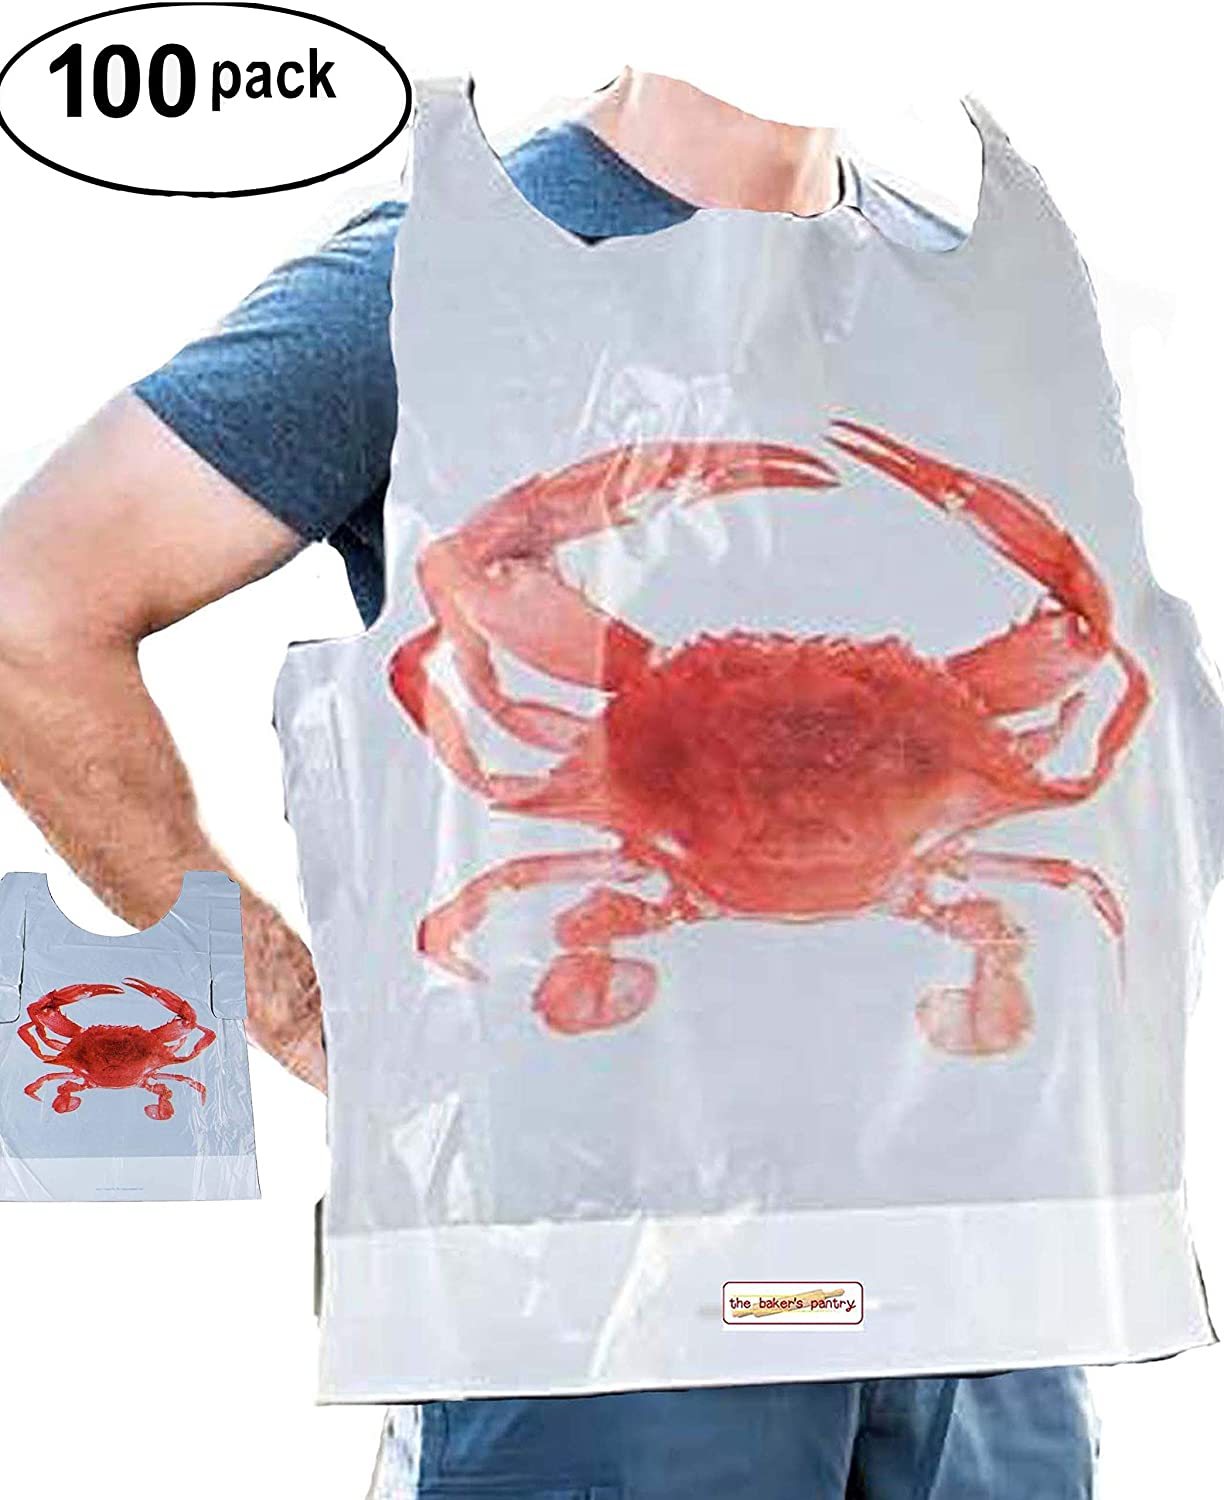 Party Supply Crab Bibs Seafood Feast Adult Disposable Bibs Protect Clothes from Spills Plastic Bibs disposable bibs for adults Size: 20